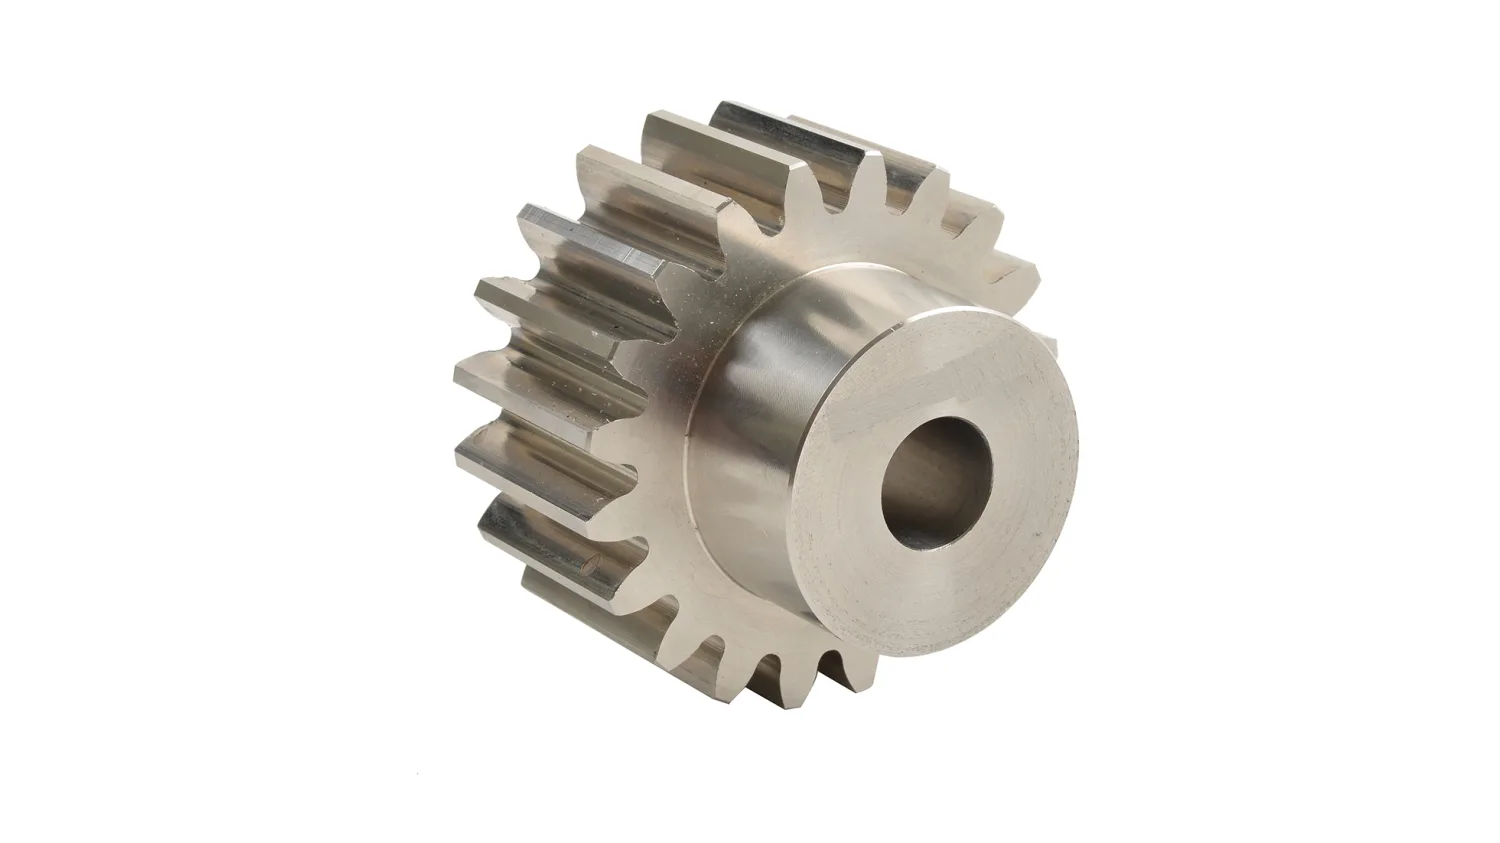 4-Mod-x-21-Tooth-Metric-Spur-Gear-in-Steel